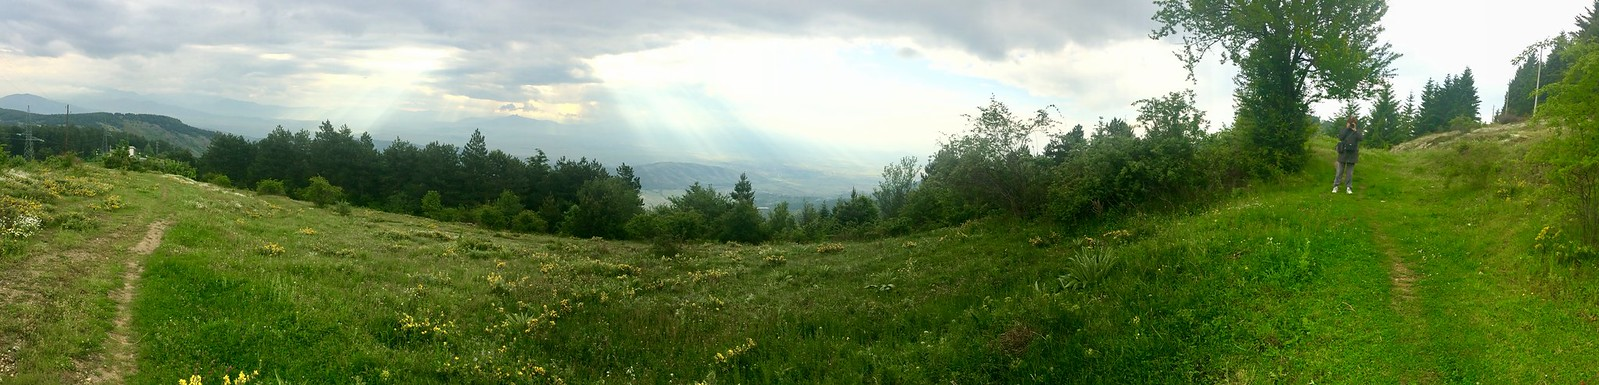 201705 - Balkans - View Above Kruševo - 50 of 101 - Krushevo, May 27, 2017